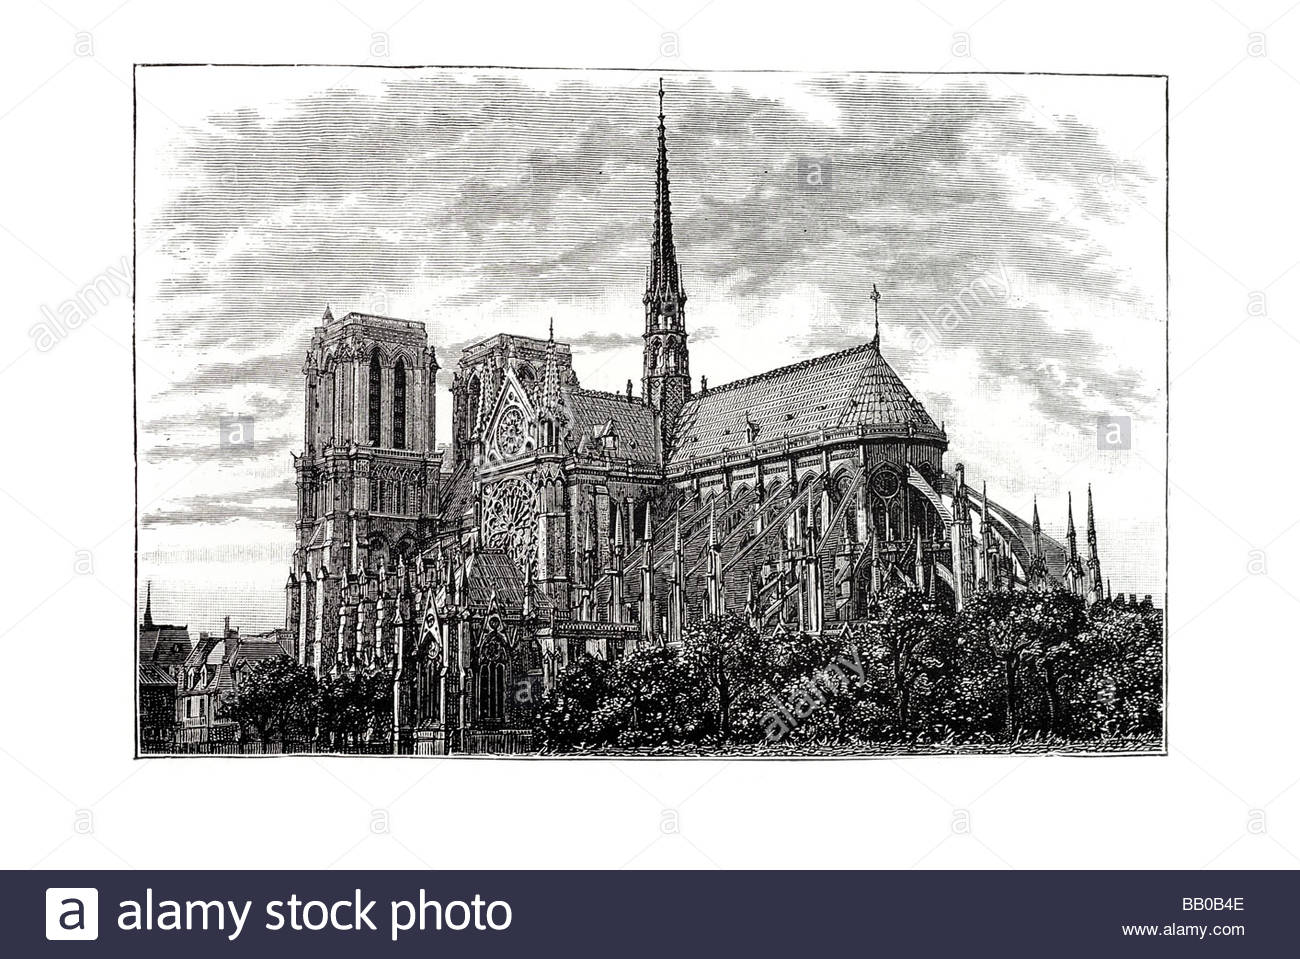 1300x959 Notre Dame Gothic Cathedral Flying Buttress Renaissance Romanesque